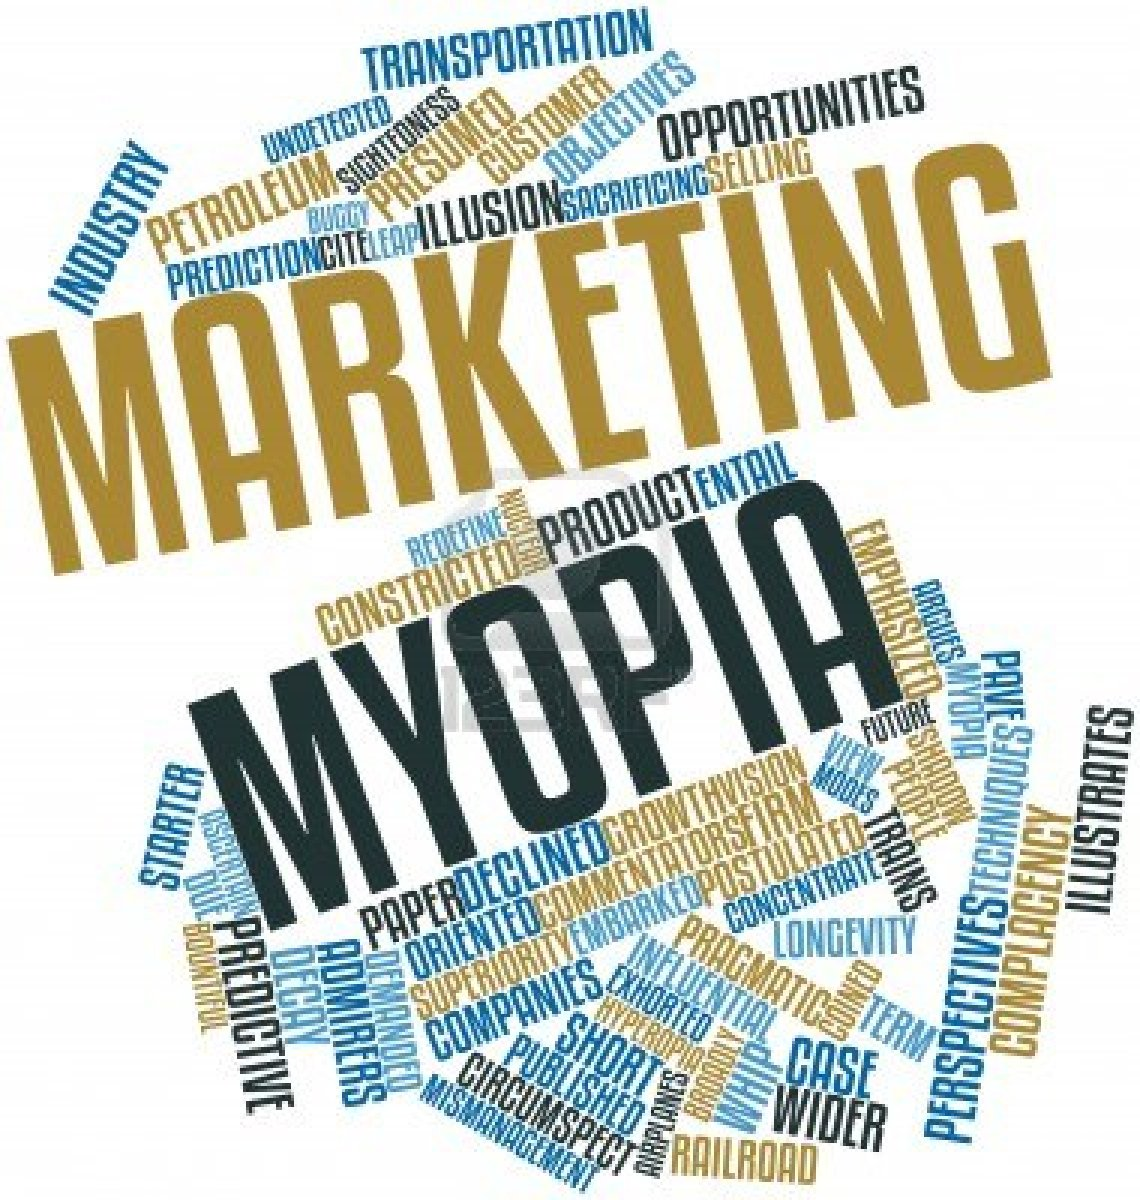 theodore levitt His article, marketing myopia, harvard business review (1960) caused an immediate sea change in the way marketing was viewed from within corporations an article in the same publication in 1983, globalization of markets, popularized the term globalization in its modern sense .